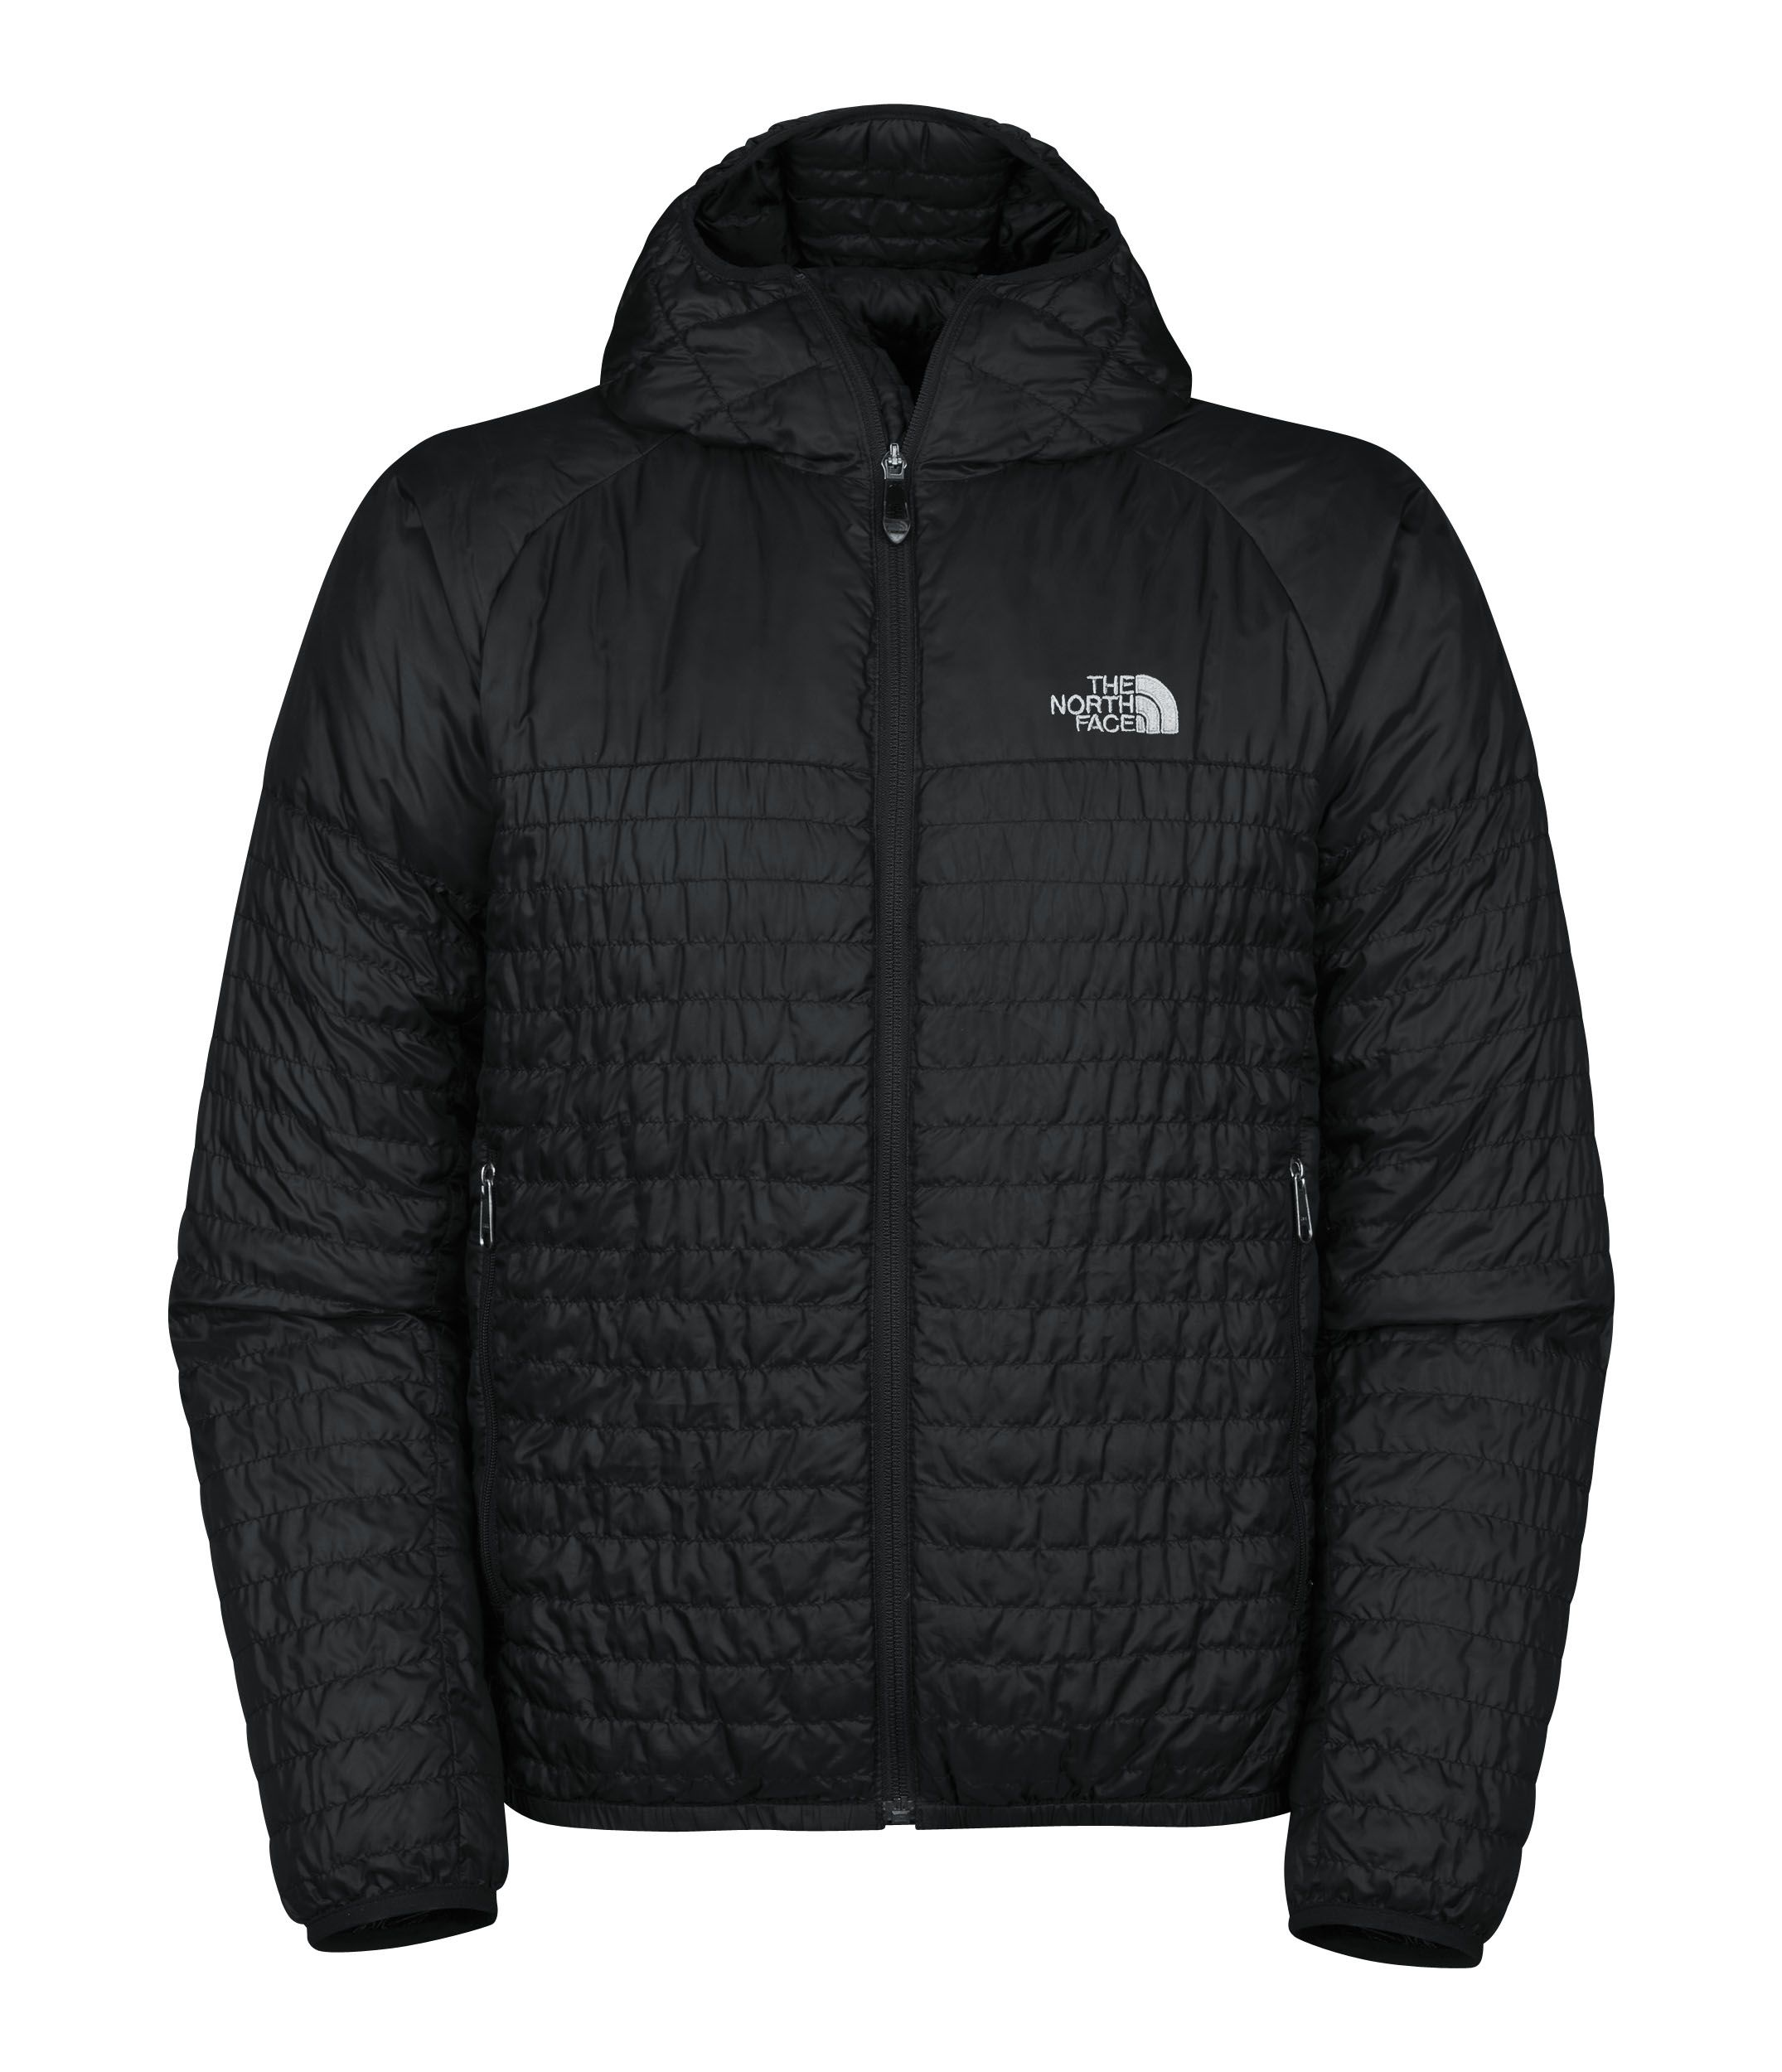 e376e373d North Face's ThermoBall Wants to Revolutionize Jacket Insulation ...